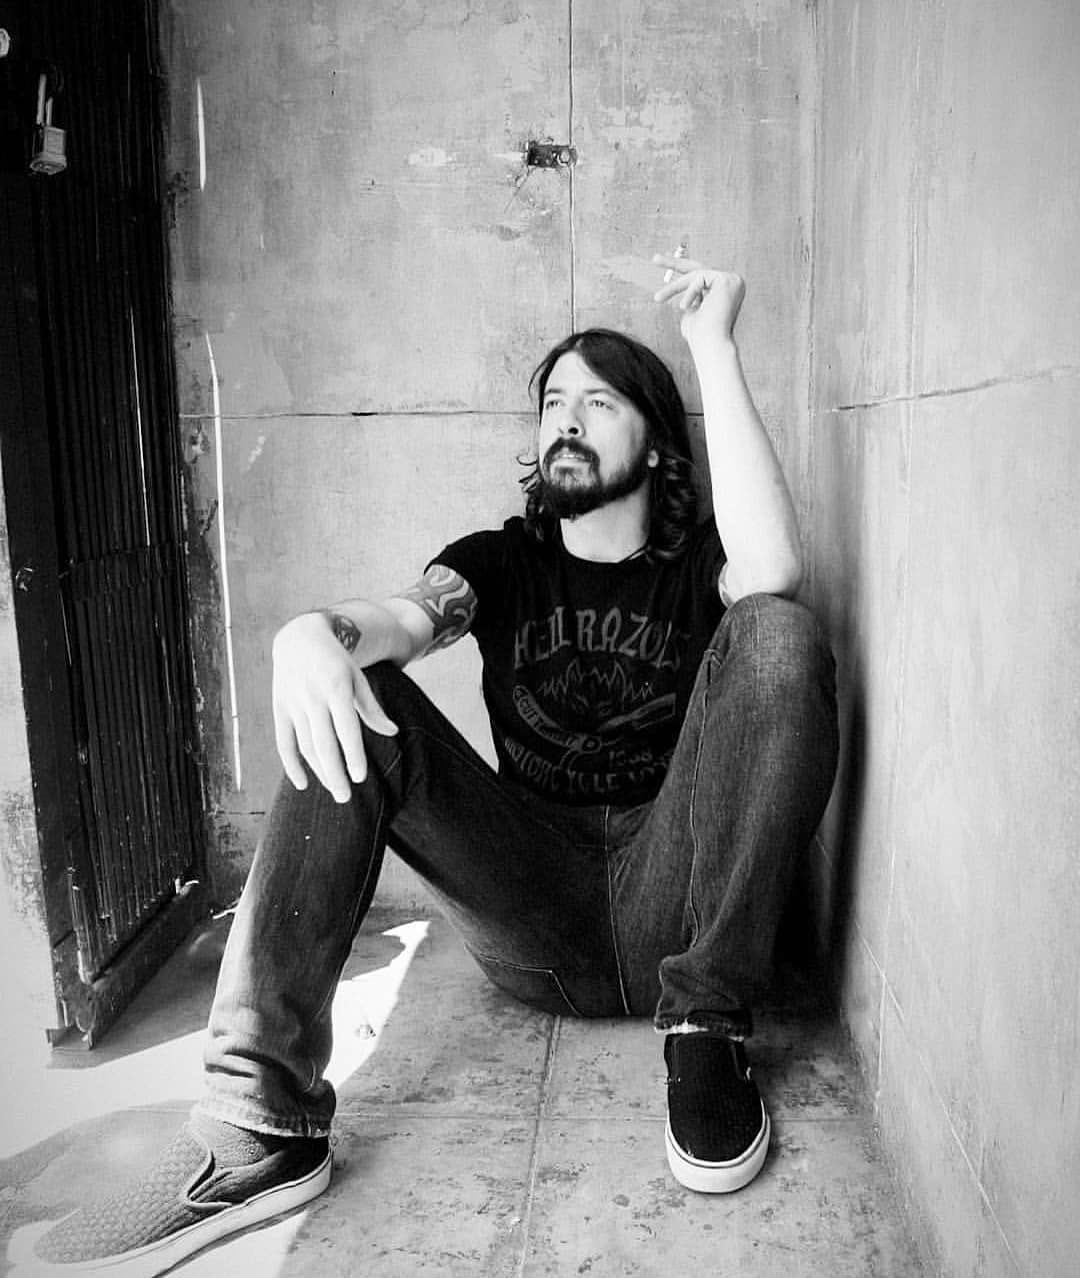 Happy birthday to the legend that is dave grohl!! <3